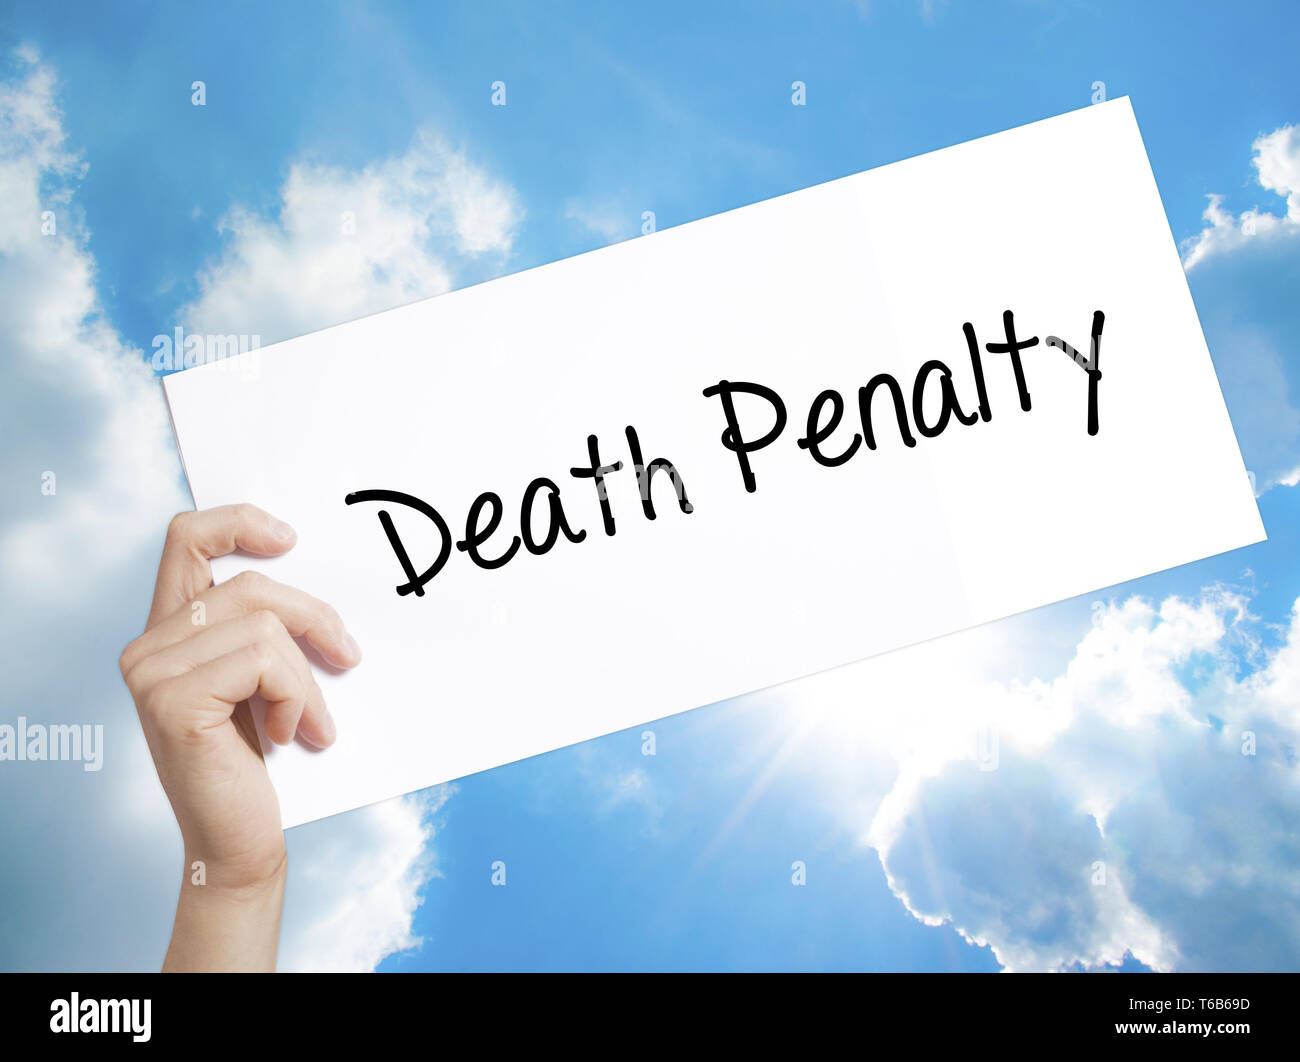 Death Penalty Sign on white paper. Man Hand Holding Paper with text. Isolated on sky background. - Stock Image